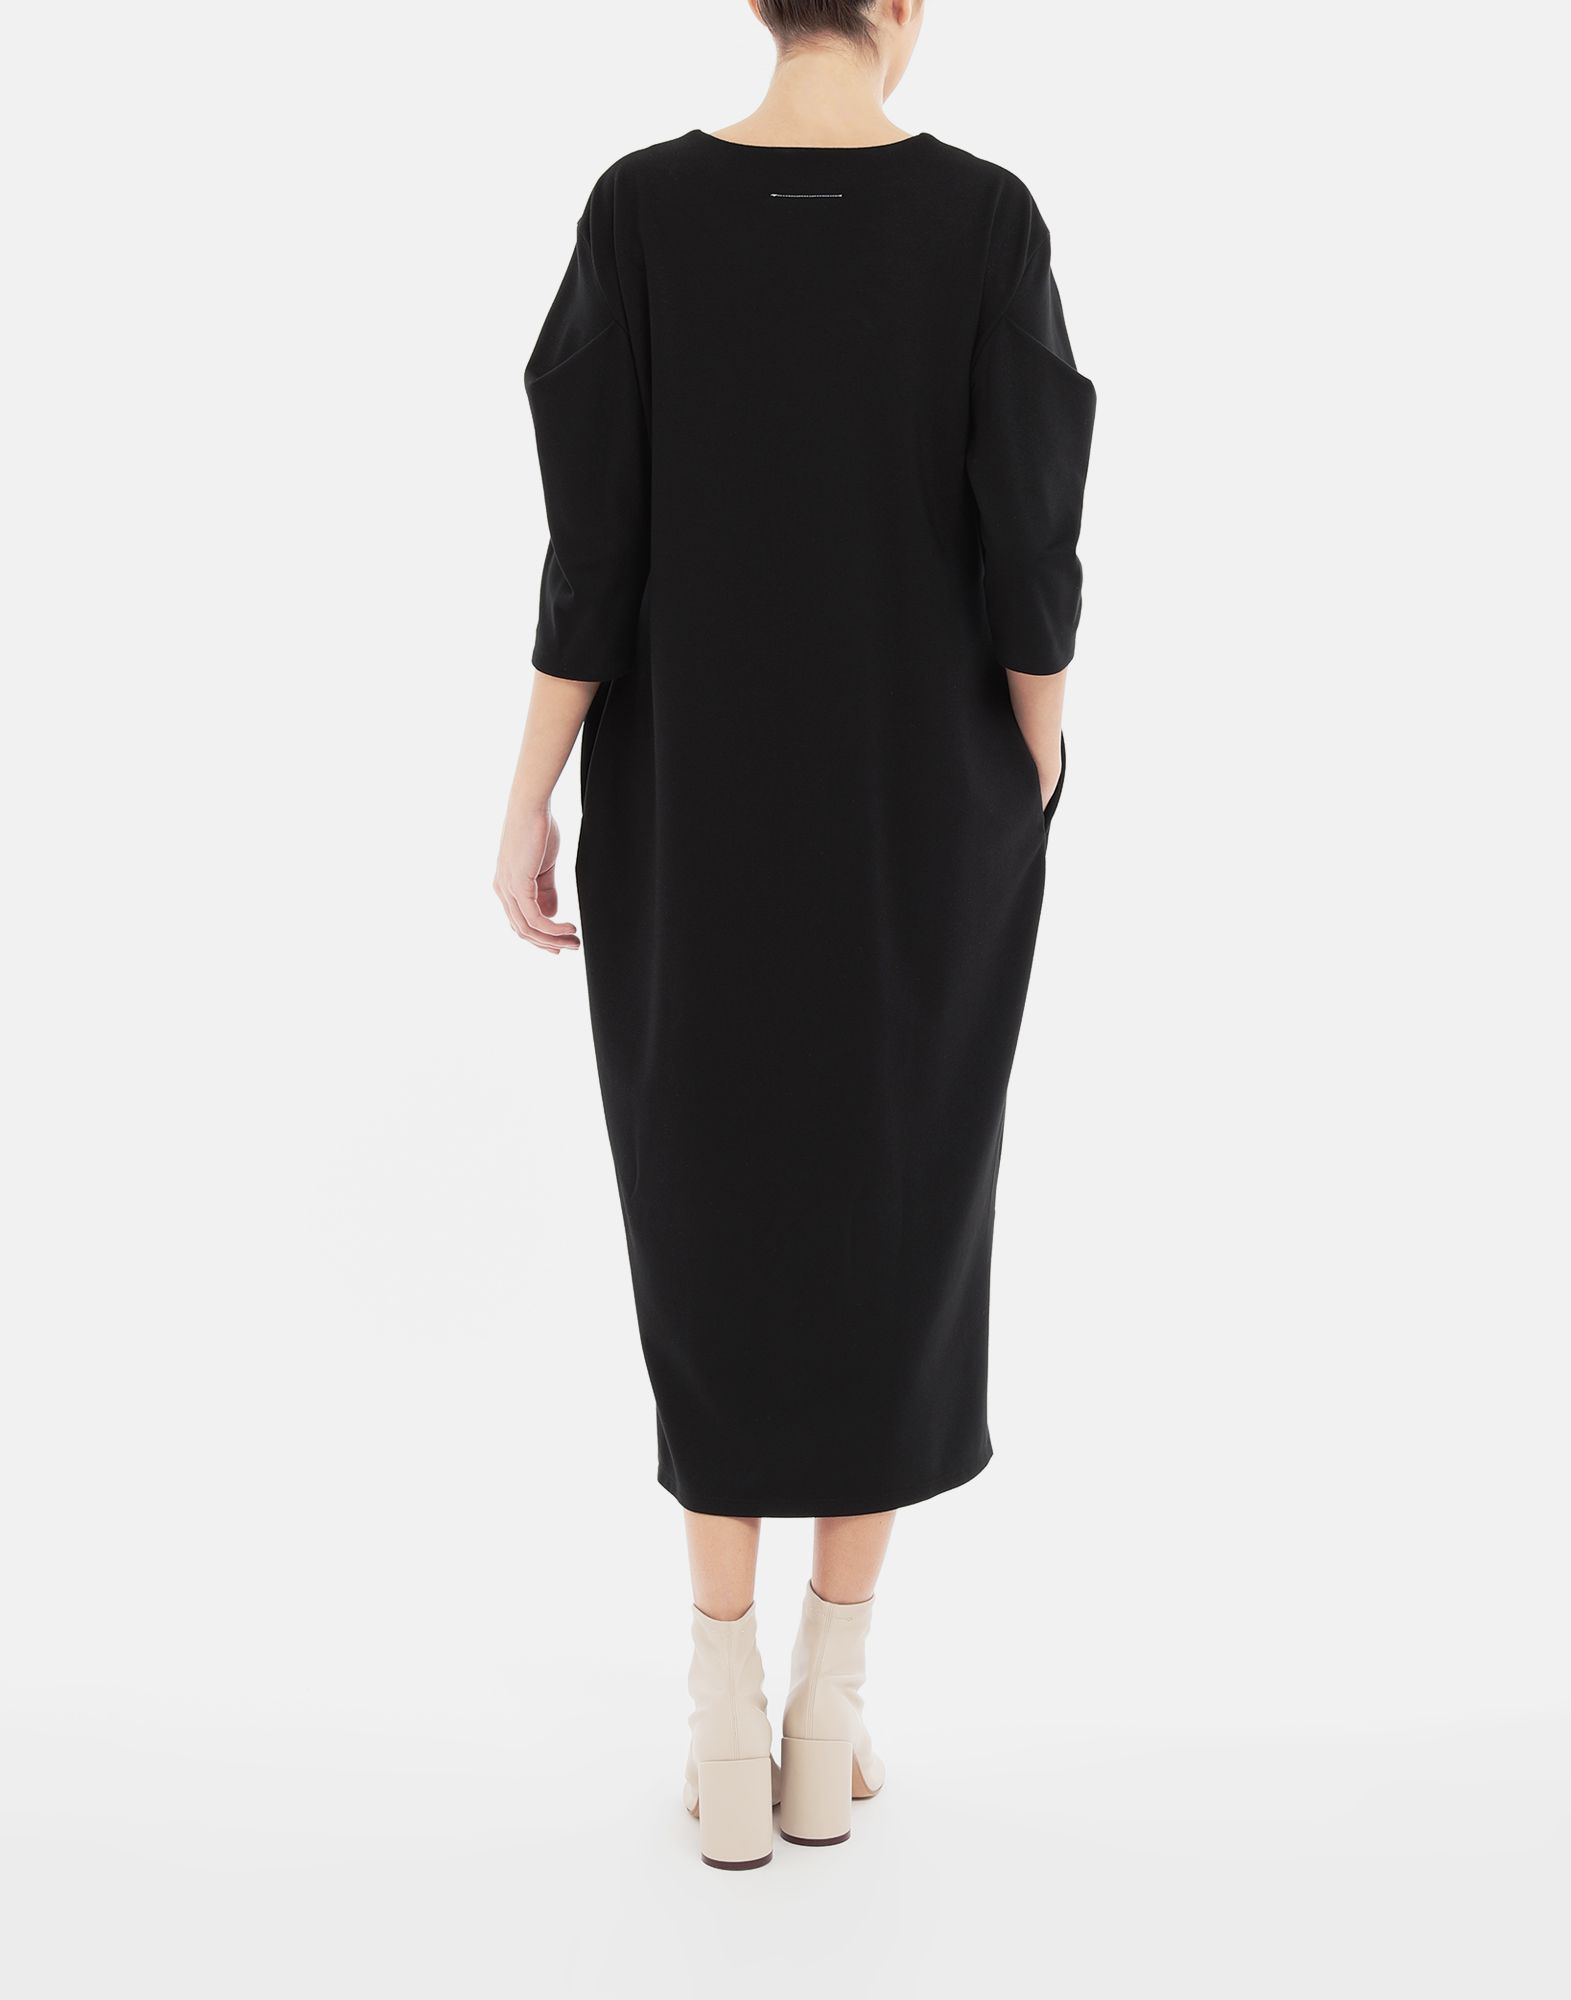 MM6 MAISON MARGIELA Puff-sleeves dress 3/4 length dress Woman e